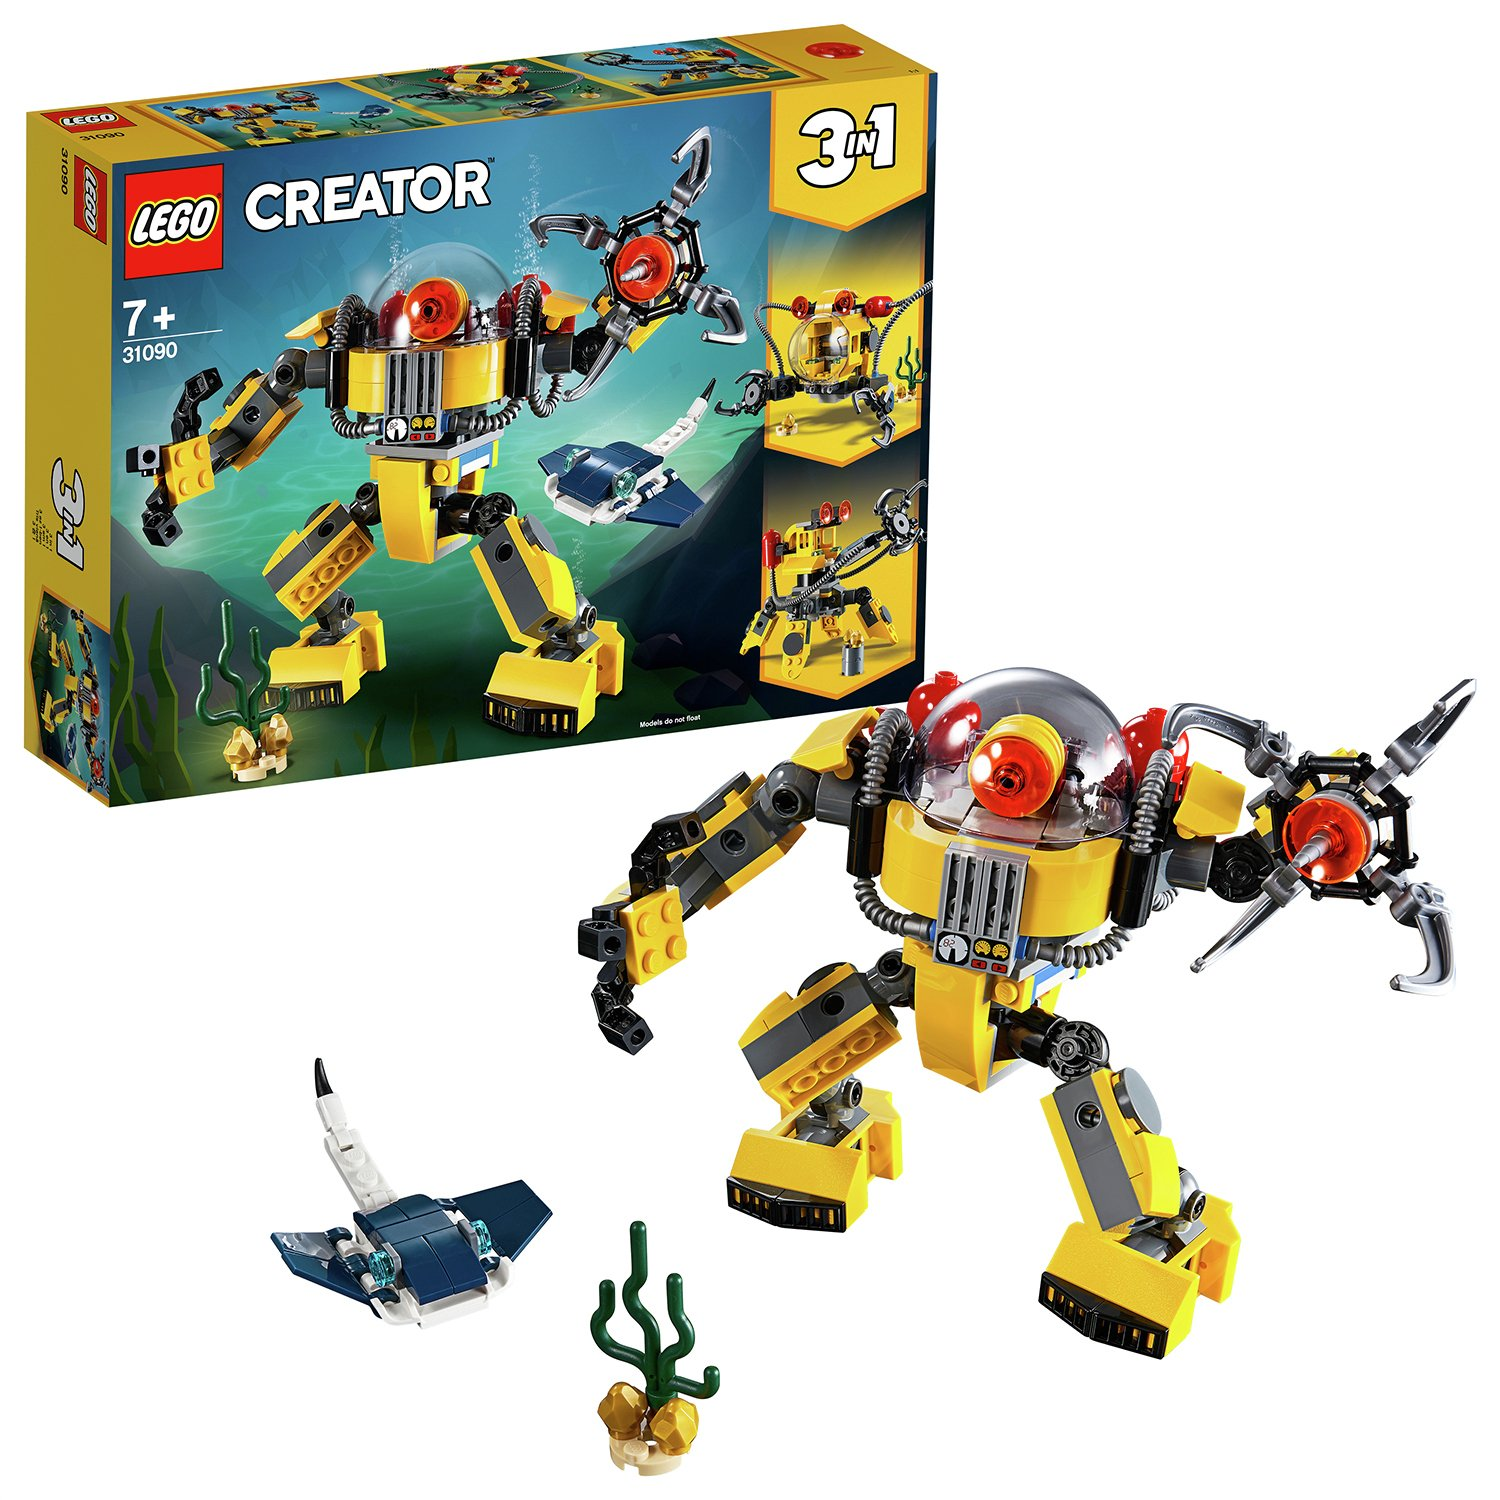 LEGO Creator Underwater Toy Robot 3in1 Building Set - 31090